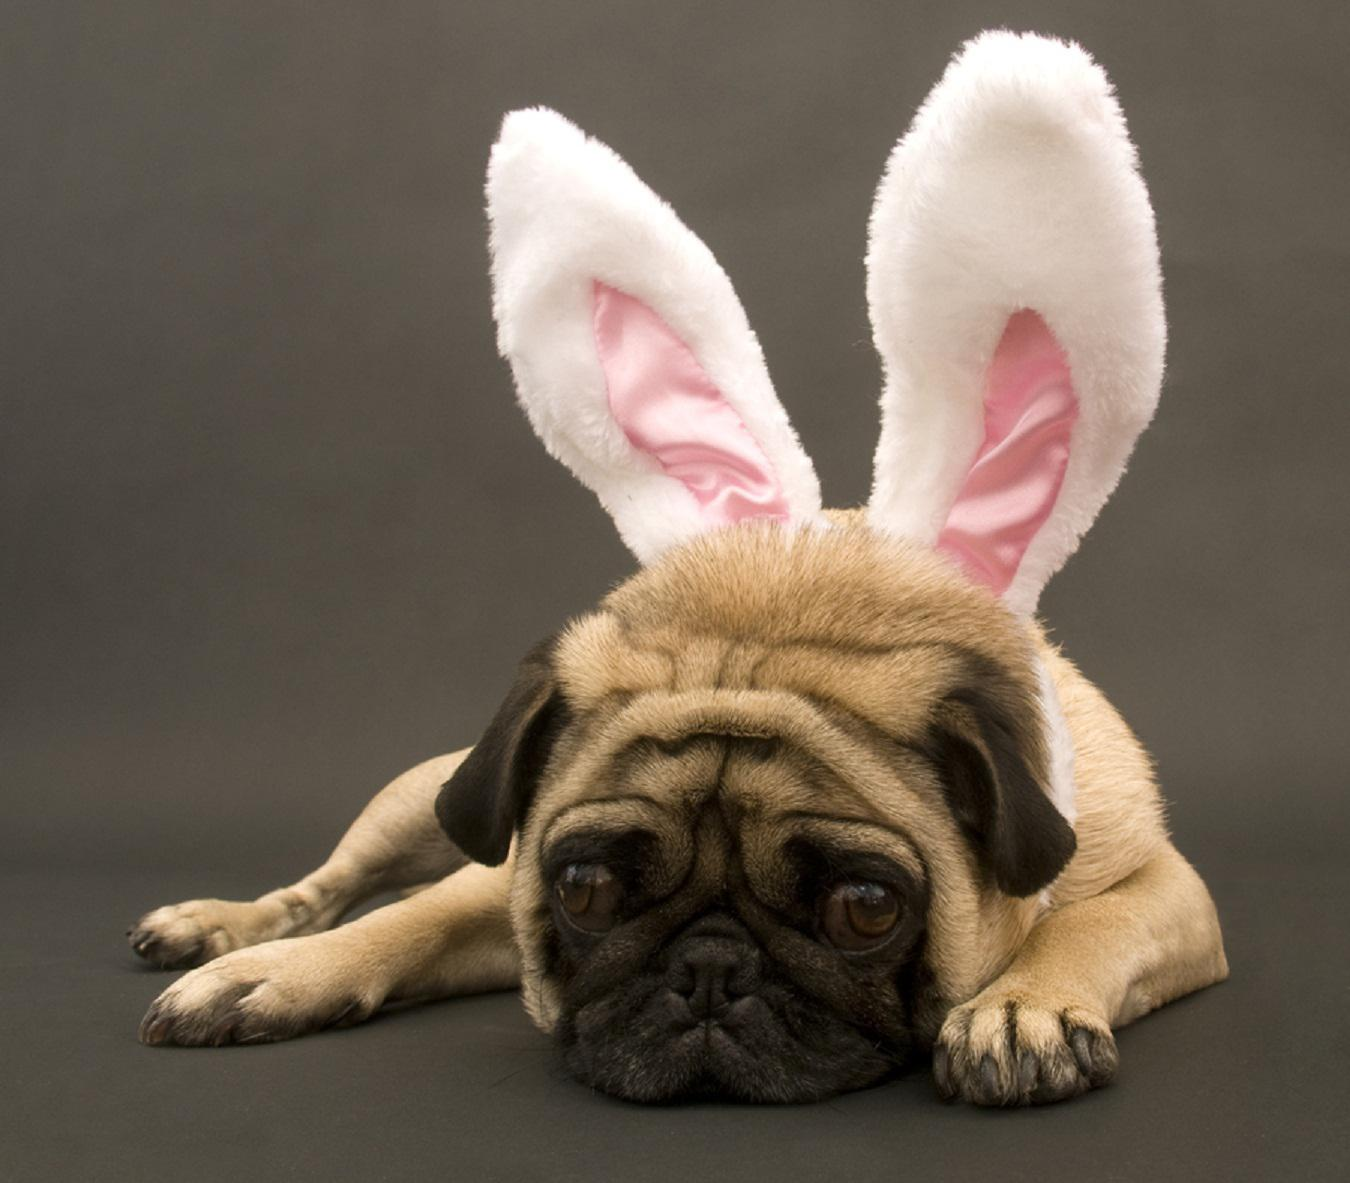 Easter Dog Wallpaper Pug Collection 11 Wallpapers